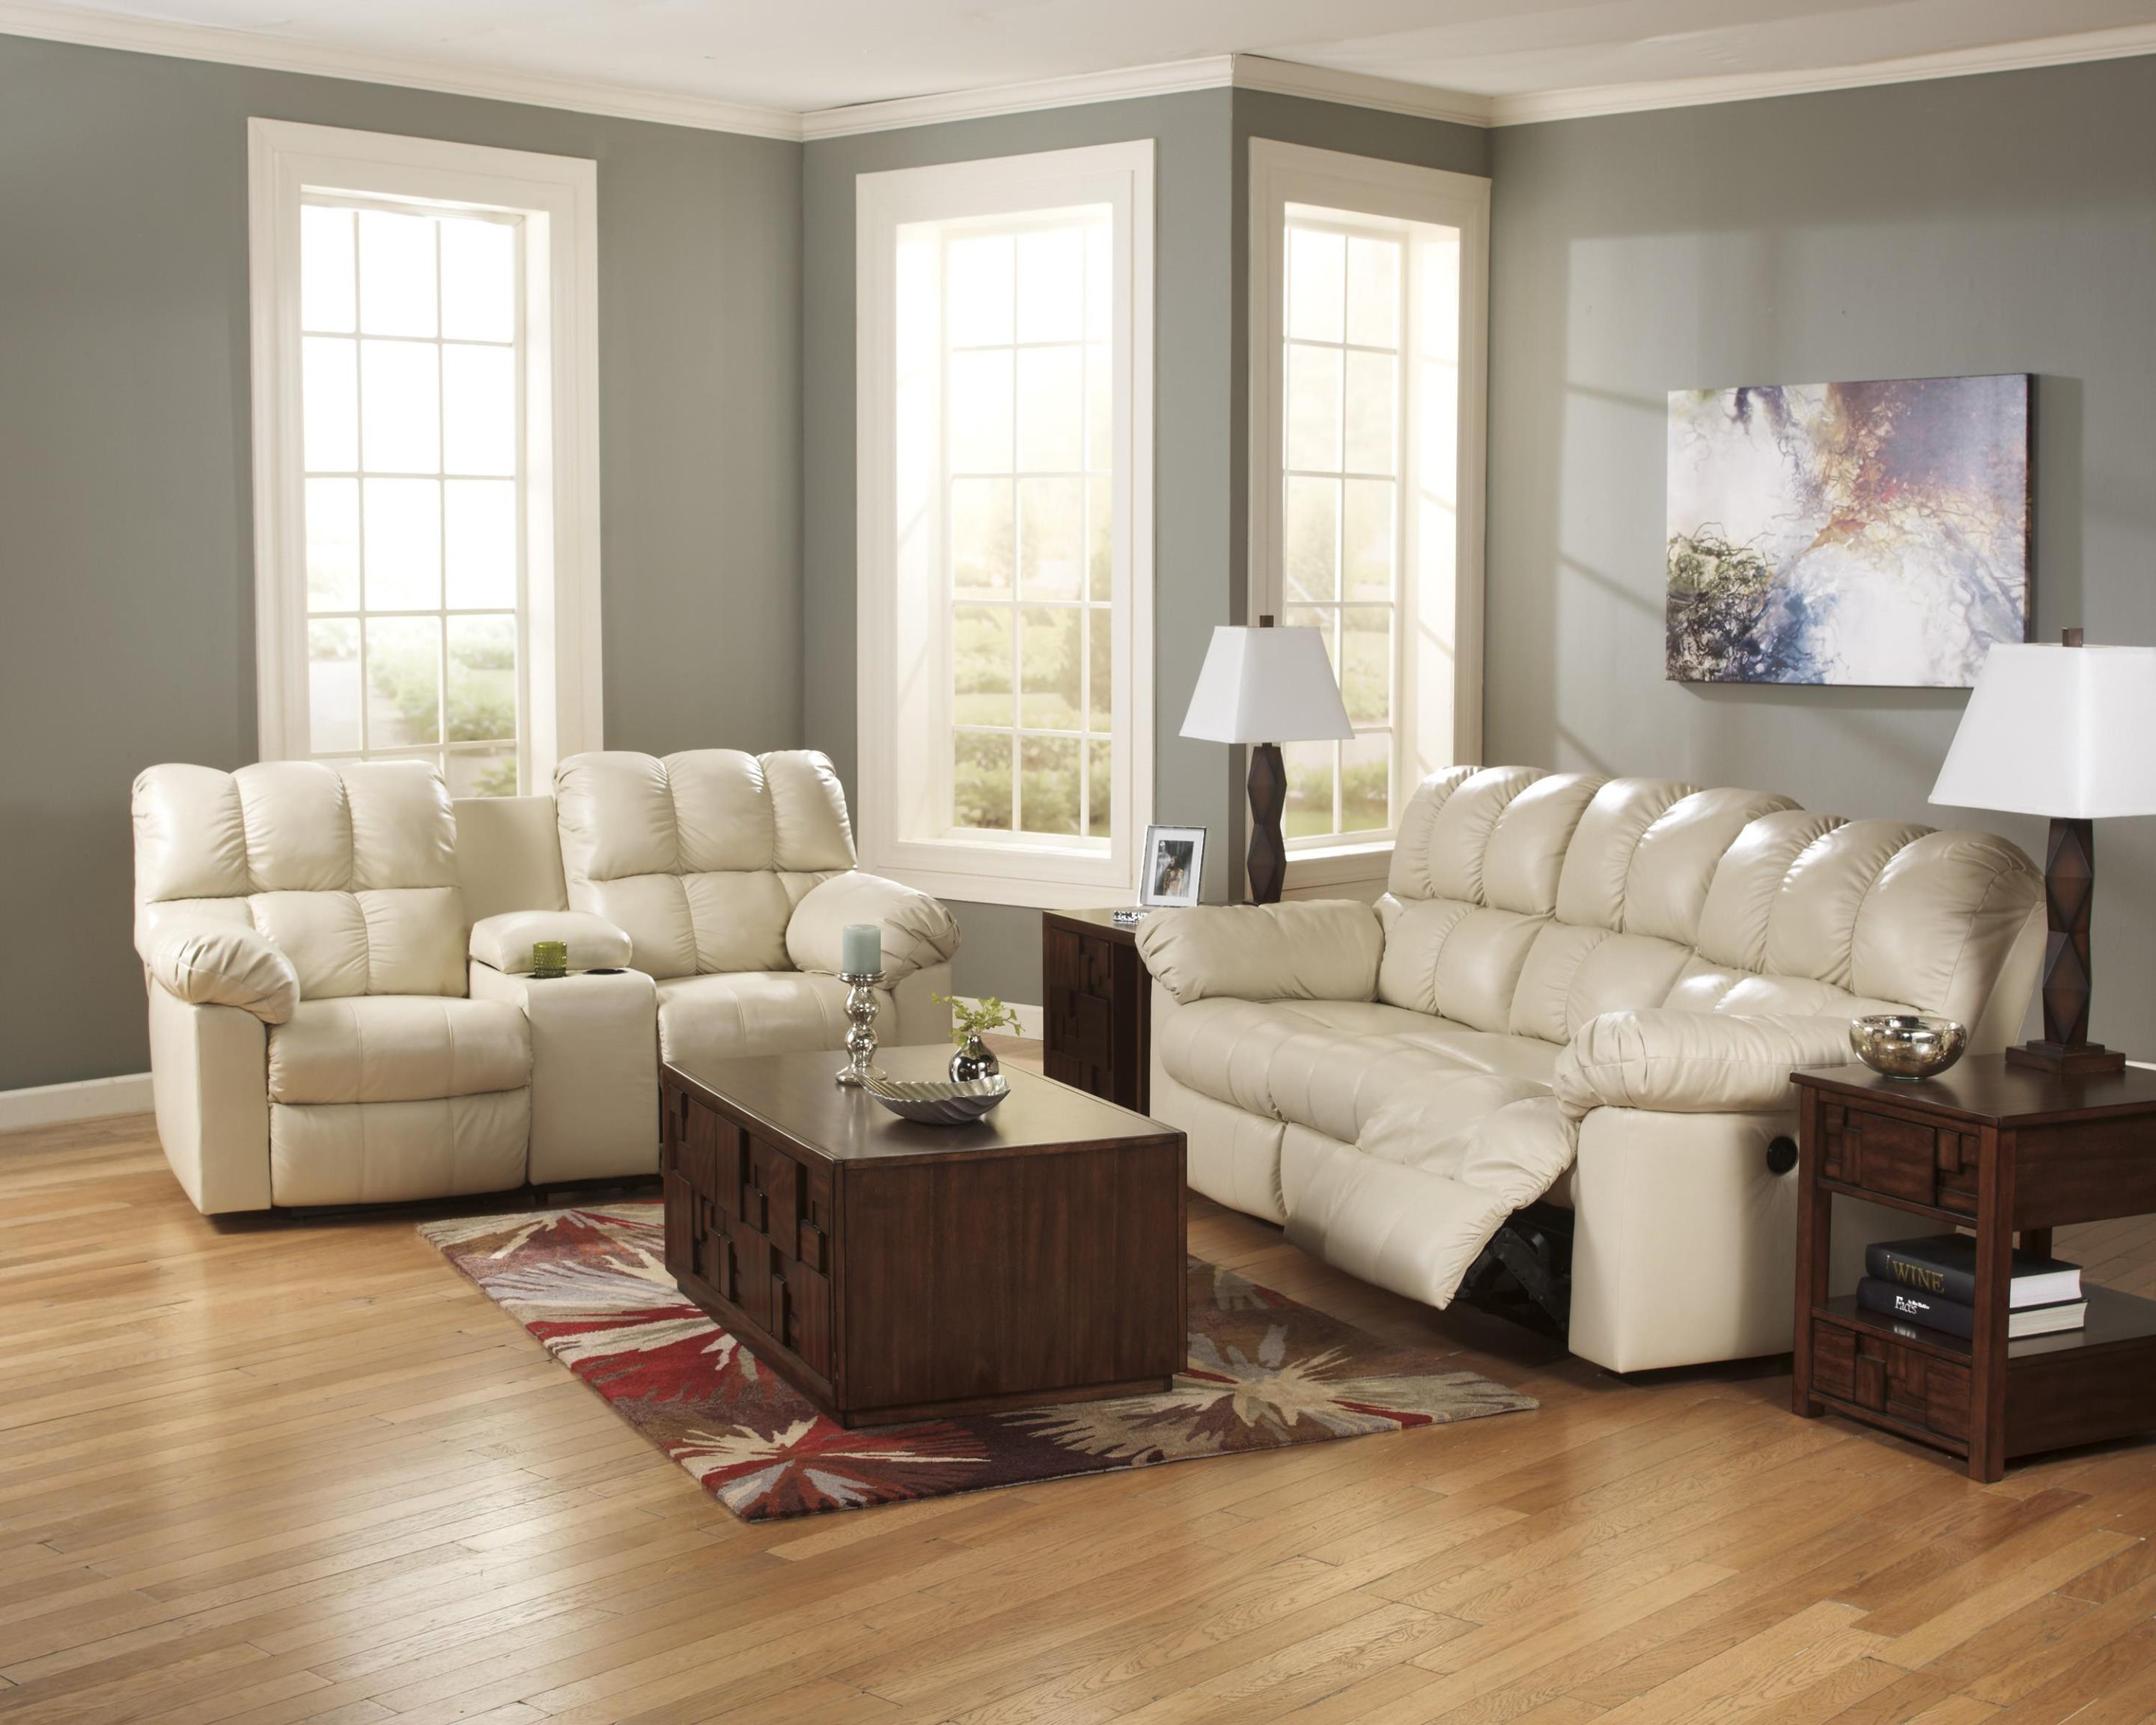 Image of: Reclining Sofa And Loveseat Sets